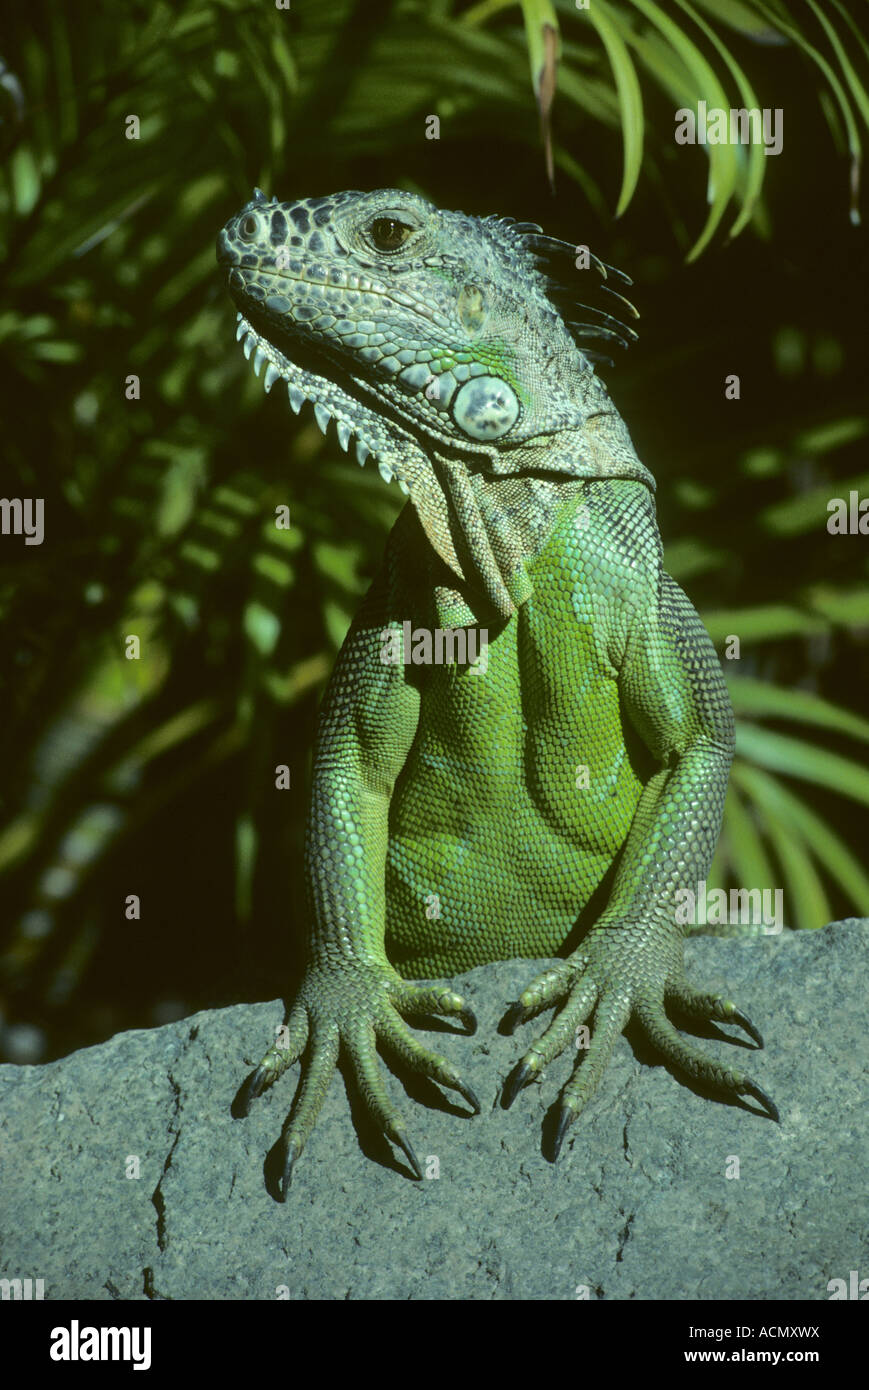 the iguana v's the thai water The iguana is a large docile species of lizard, meaning that iguanas are often a popular choice when keeping exotic petsiguanas have excellent sight allowing the iguana to iguanas are native to the jungles of central and south america, and the caribbean.